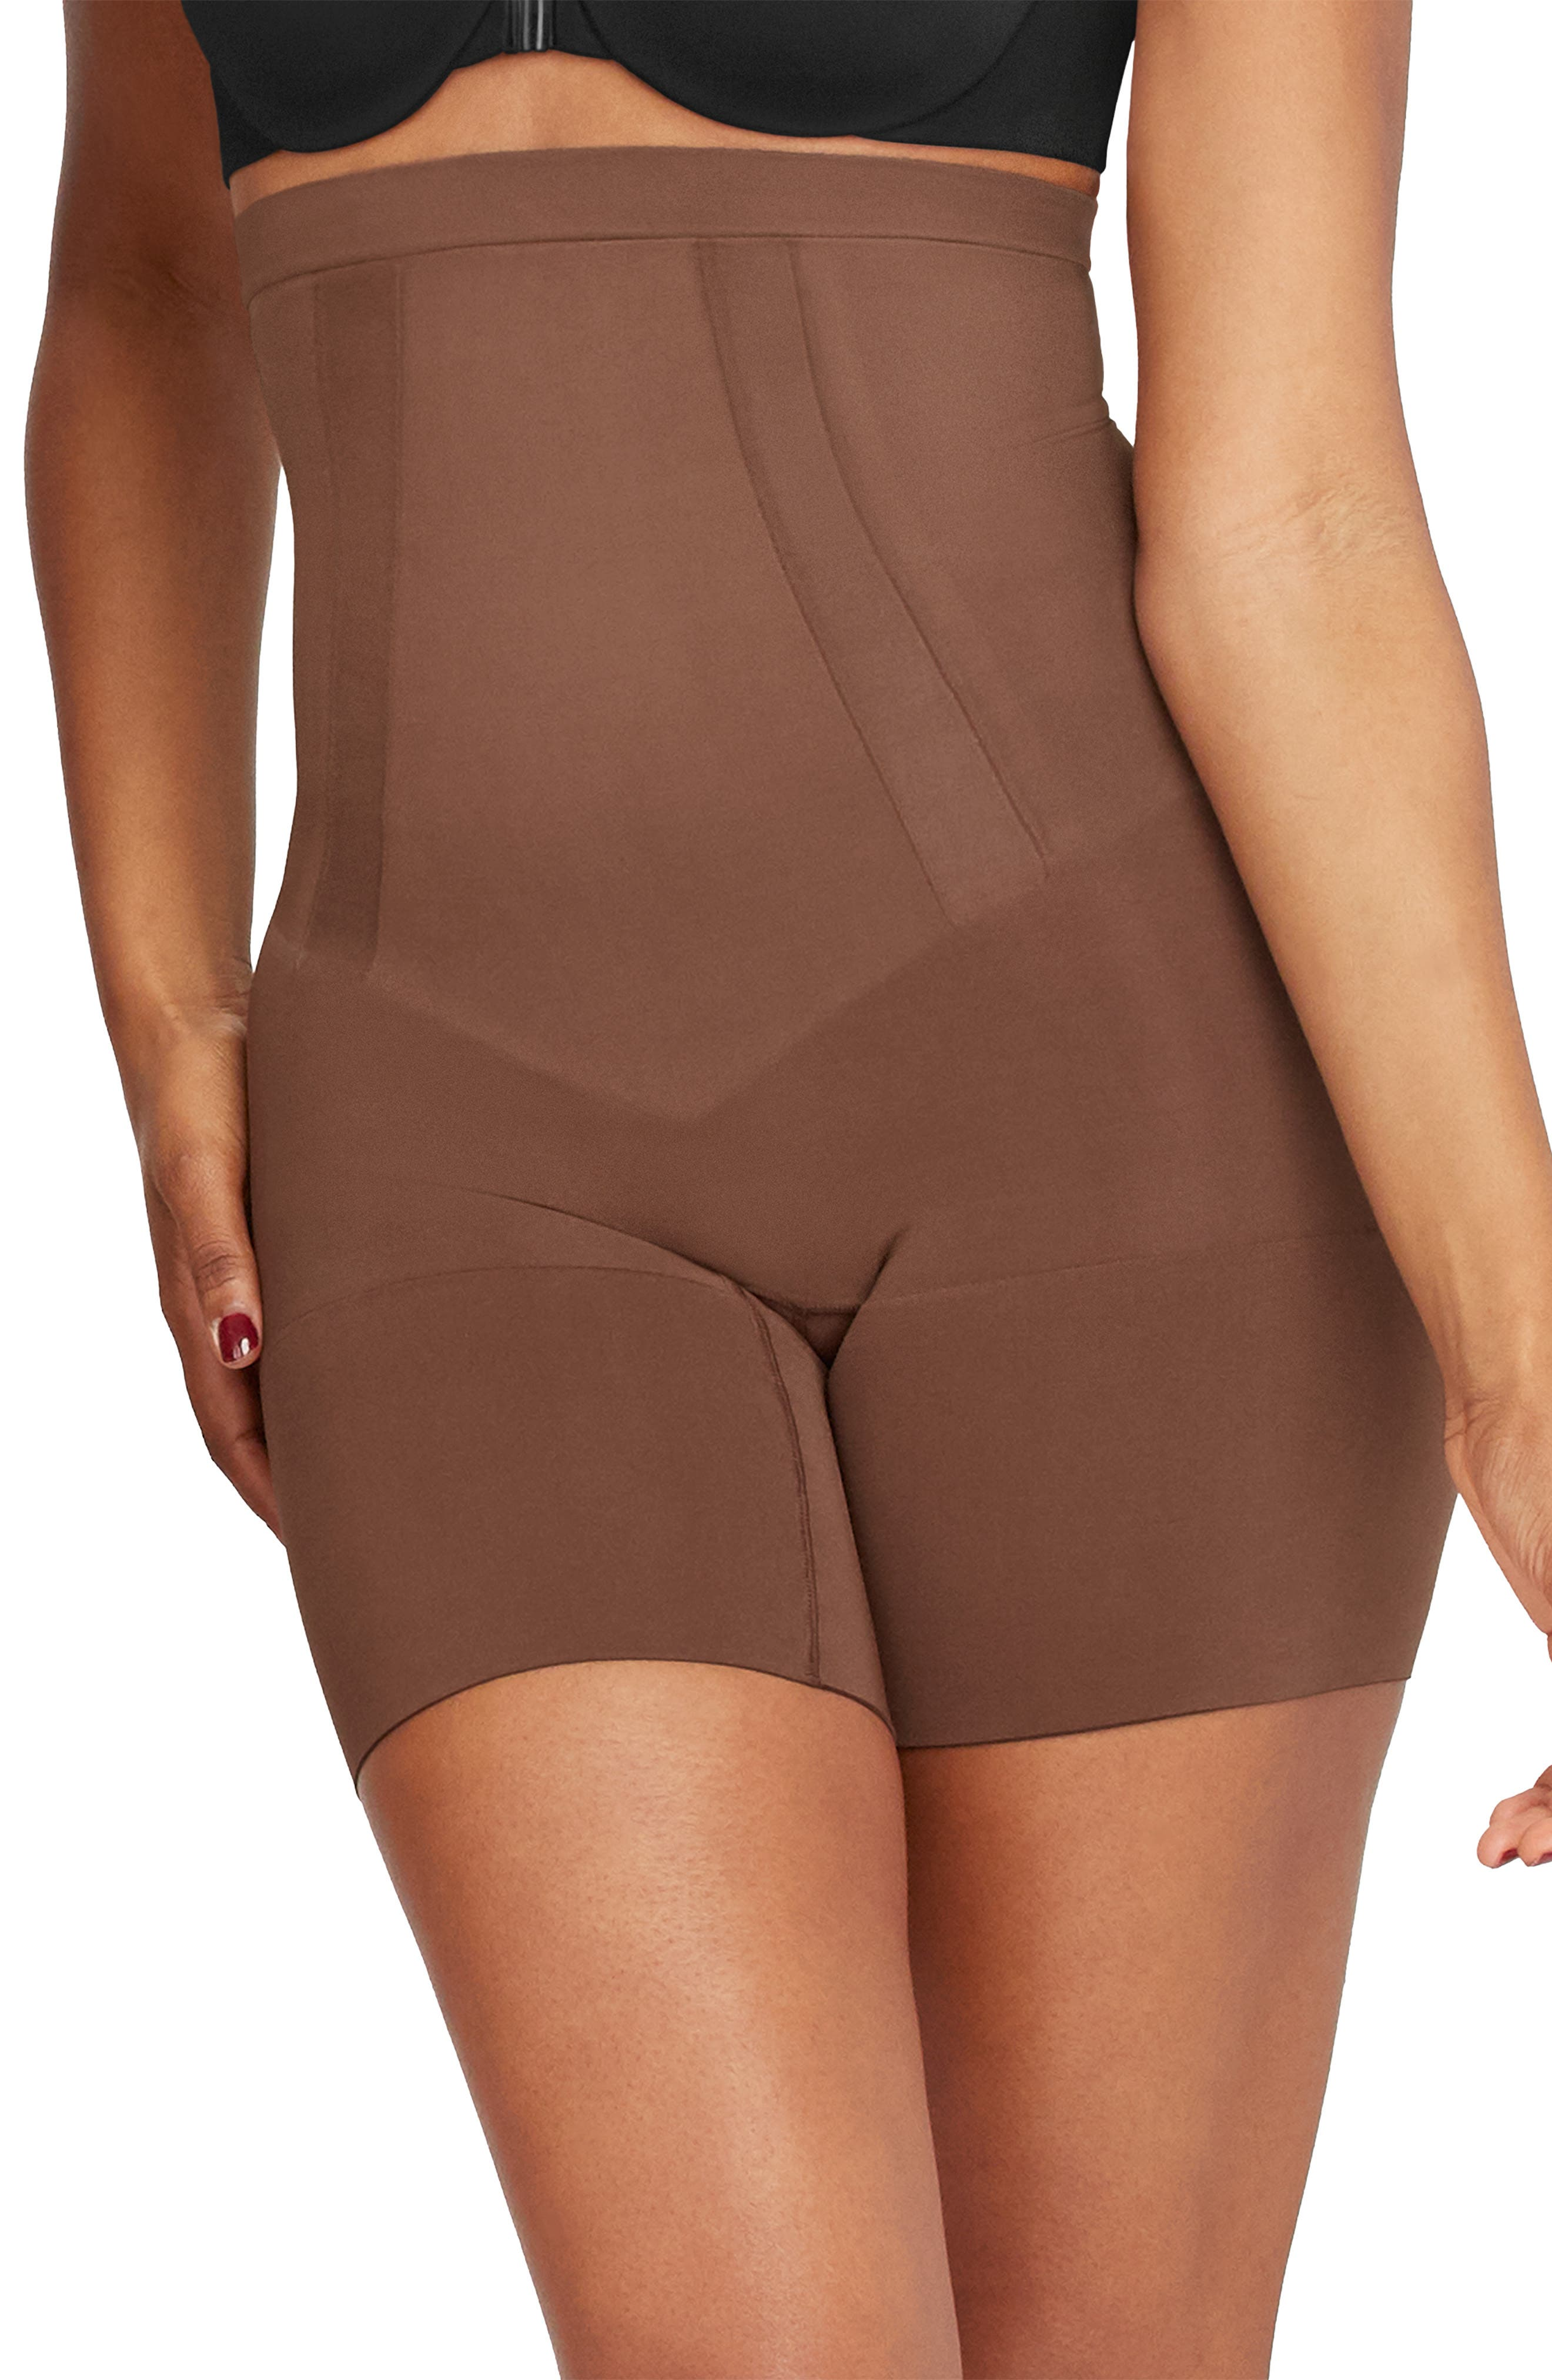 Light yet powerful, this sculpting shaper has fully bonded front panels for a tabletop flat stomach and edge-bonded sides for comfy, squeeze-free slimming. Style Name: Spanx Oncore High Waist Mid Thigh Shaper Shorts. Style Number: 1049897. Available in stores.